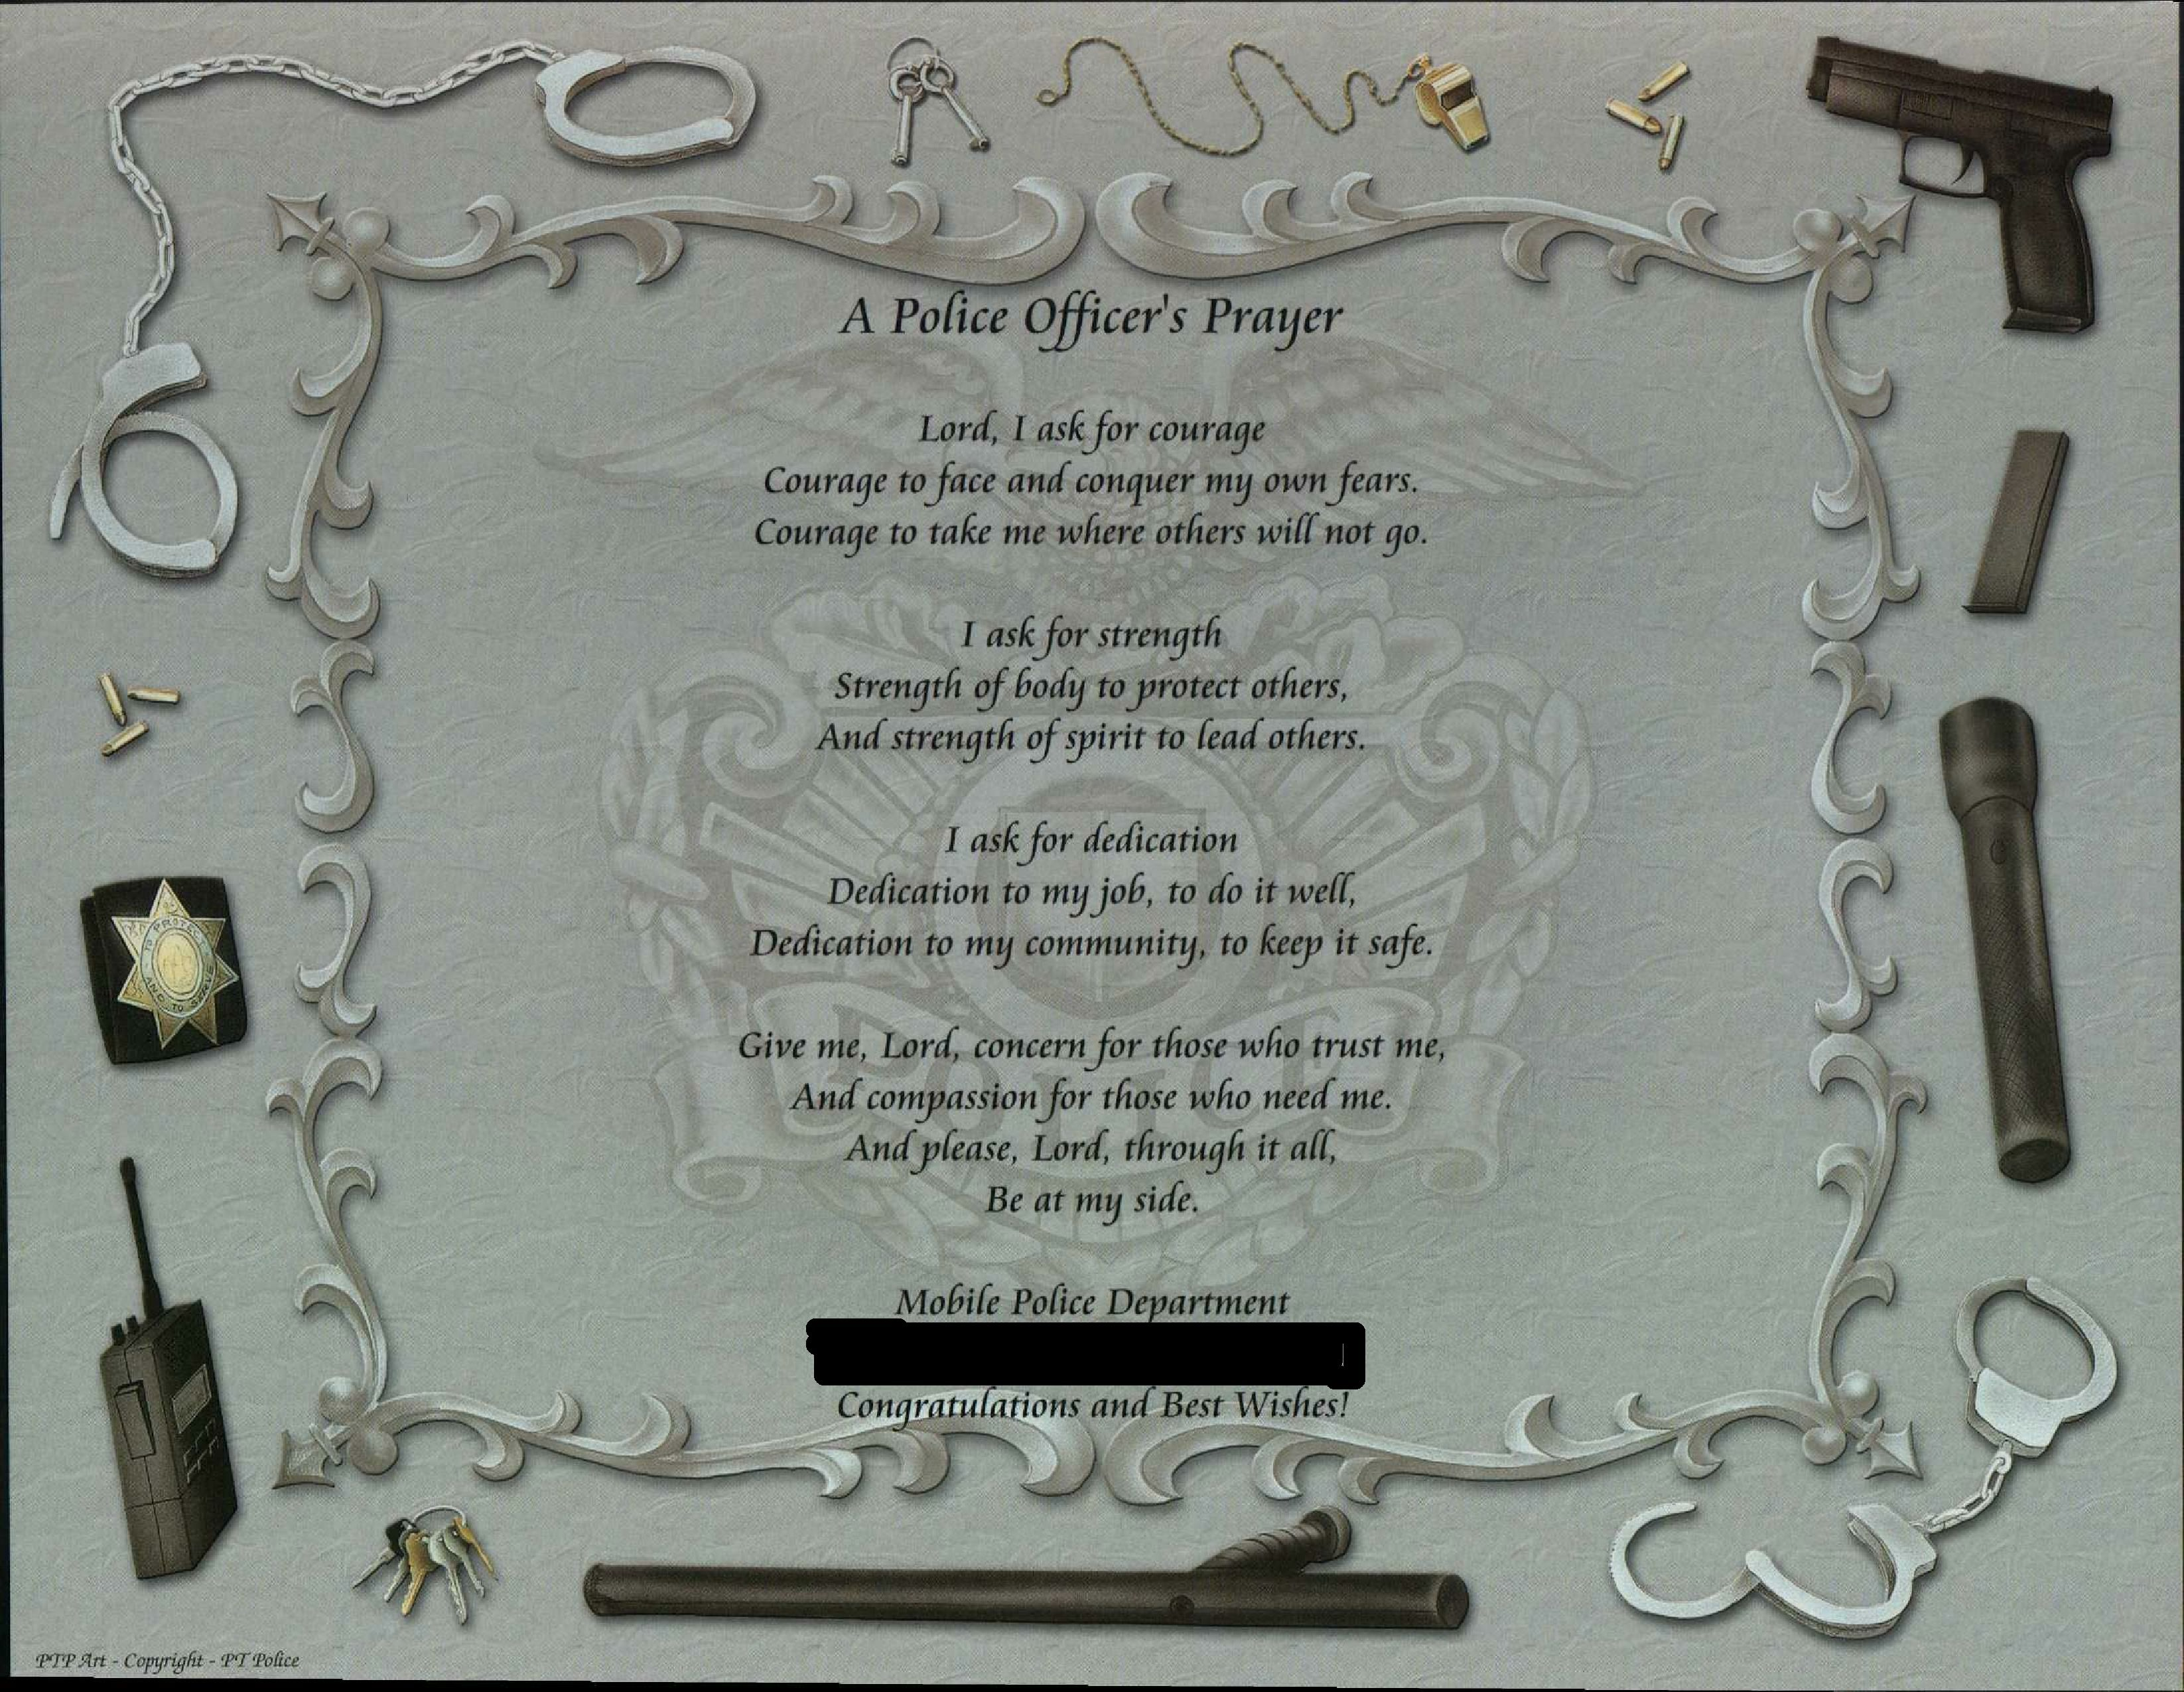 A Police Officer's Prayer on Police1 background with